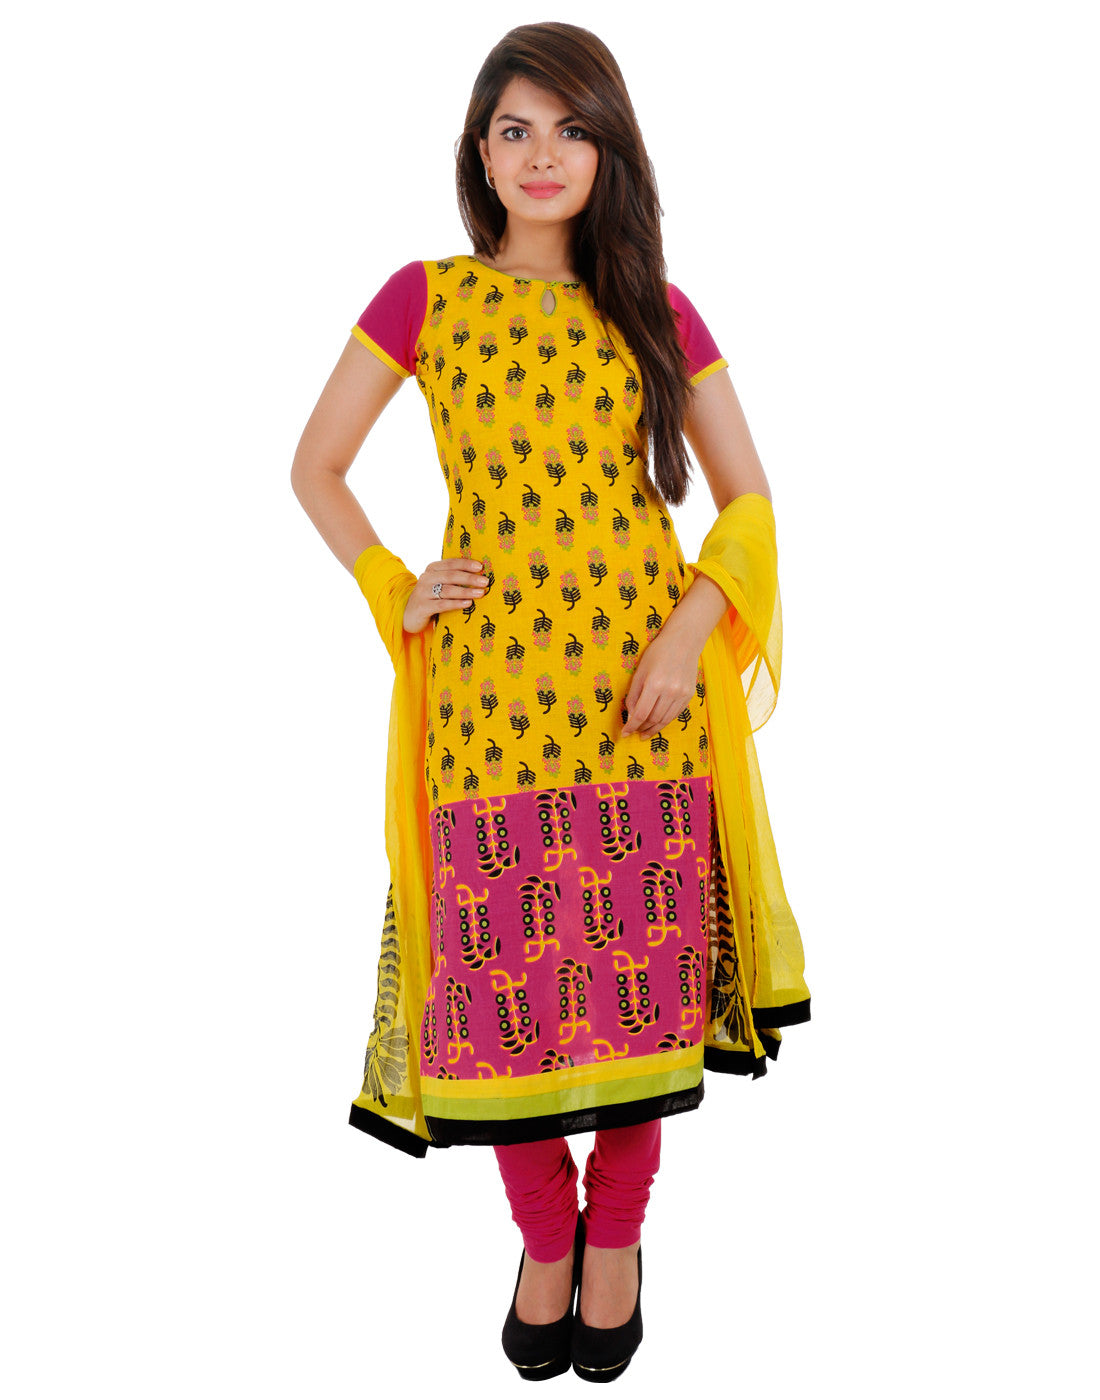 3Pce Suit - Stunning Yellow Cotton Printed Kurta, Chudi and Cotton Dupatta